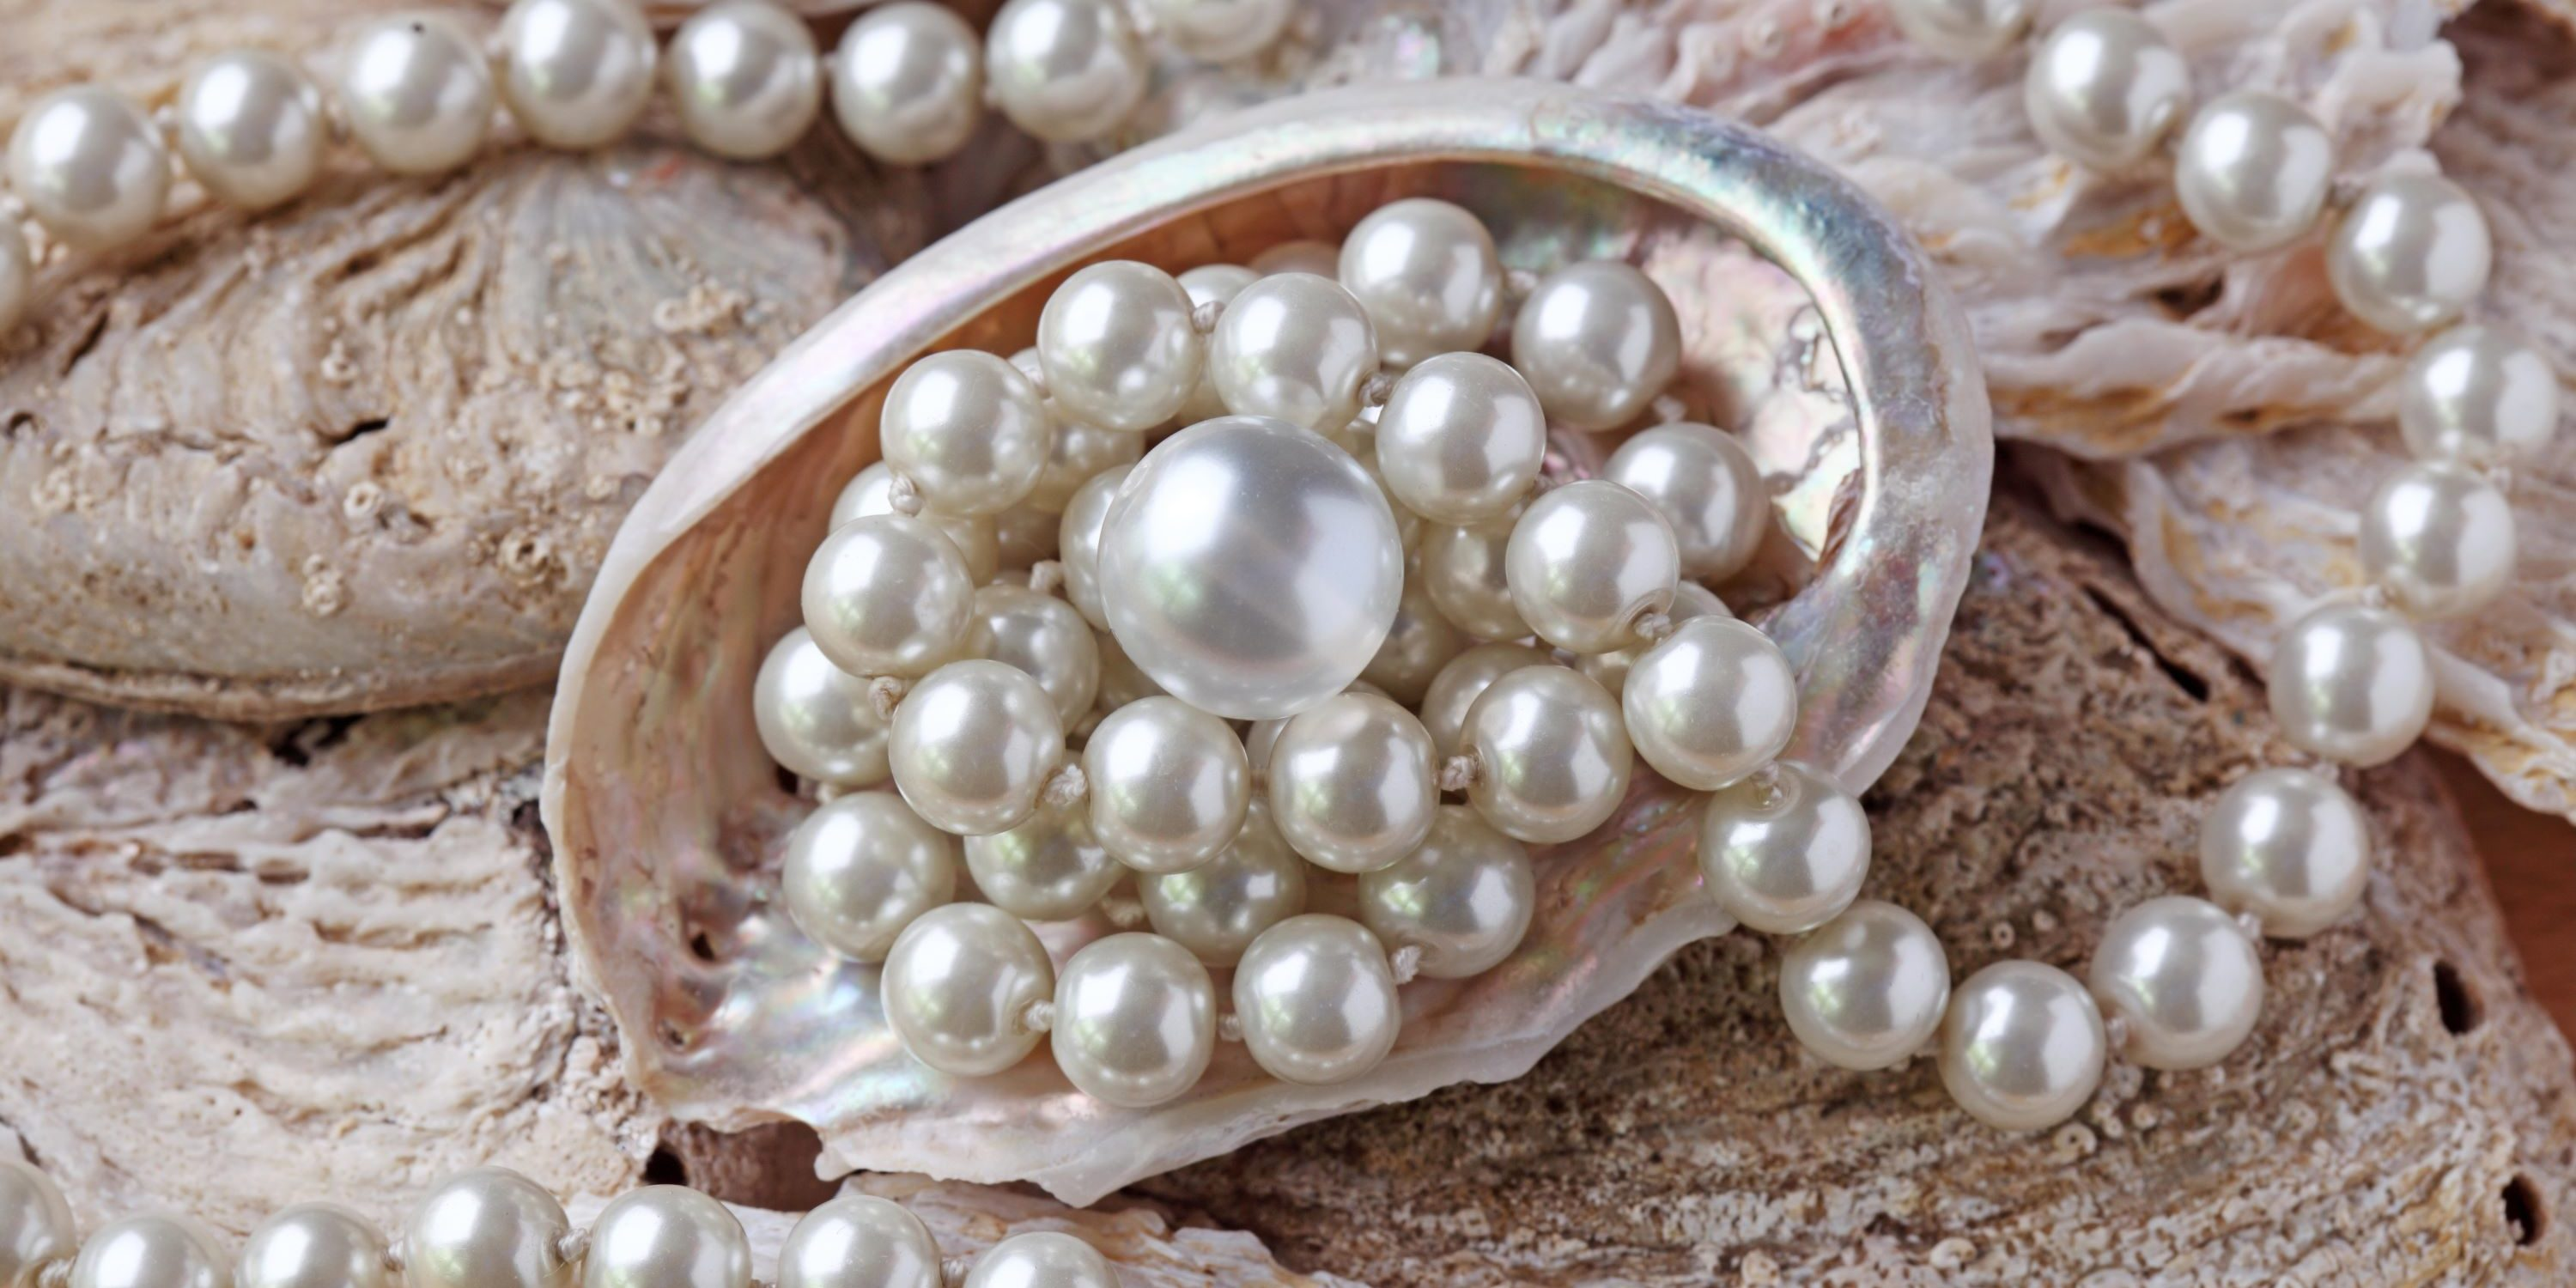 Pearls and pearl necklace in a mollusk